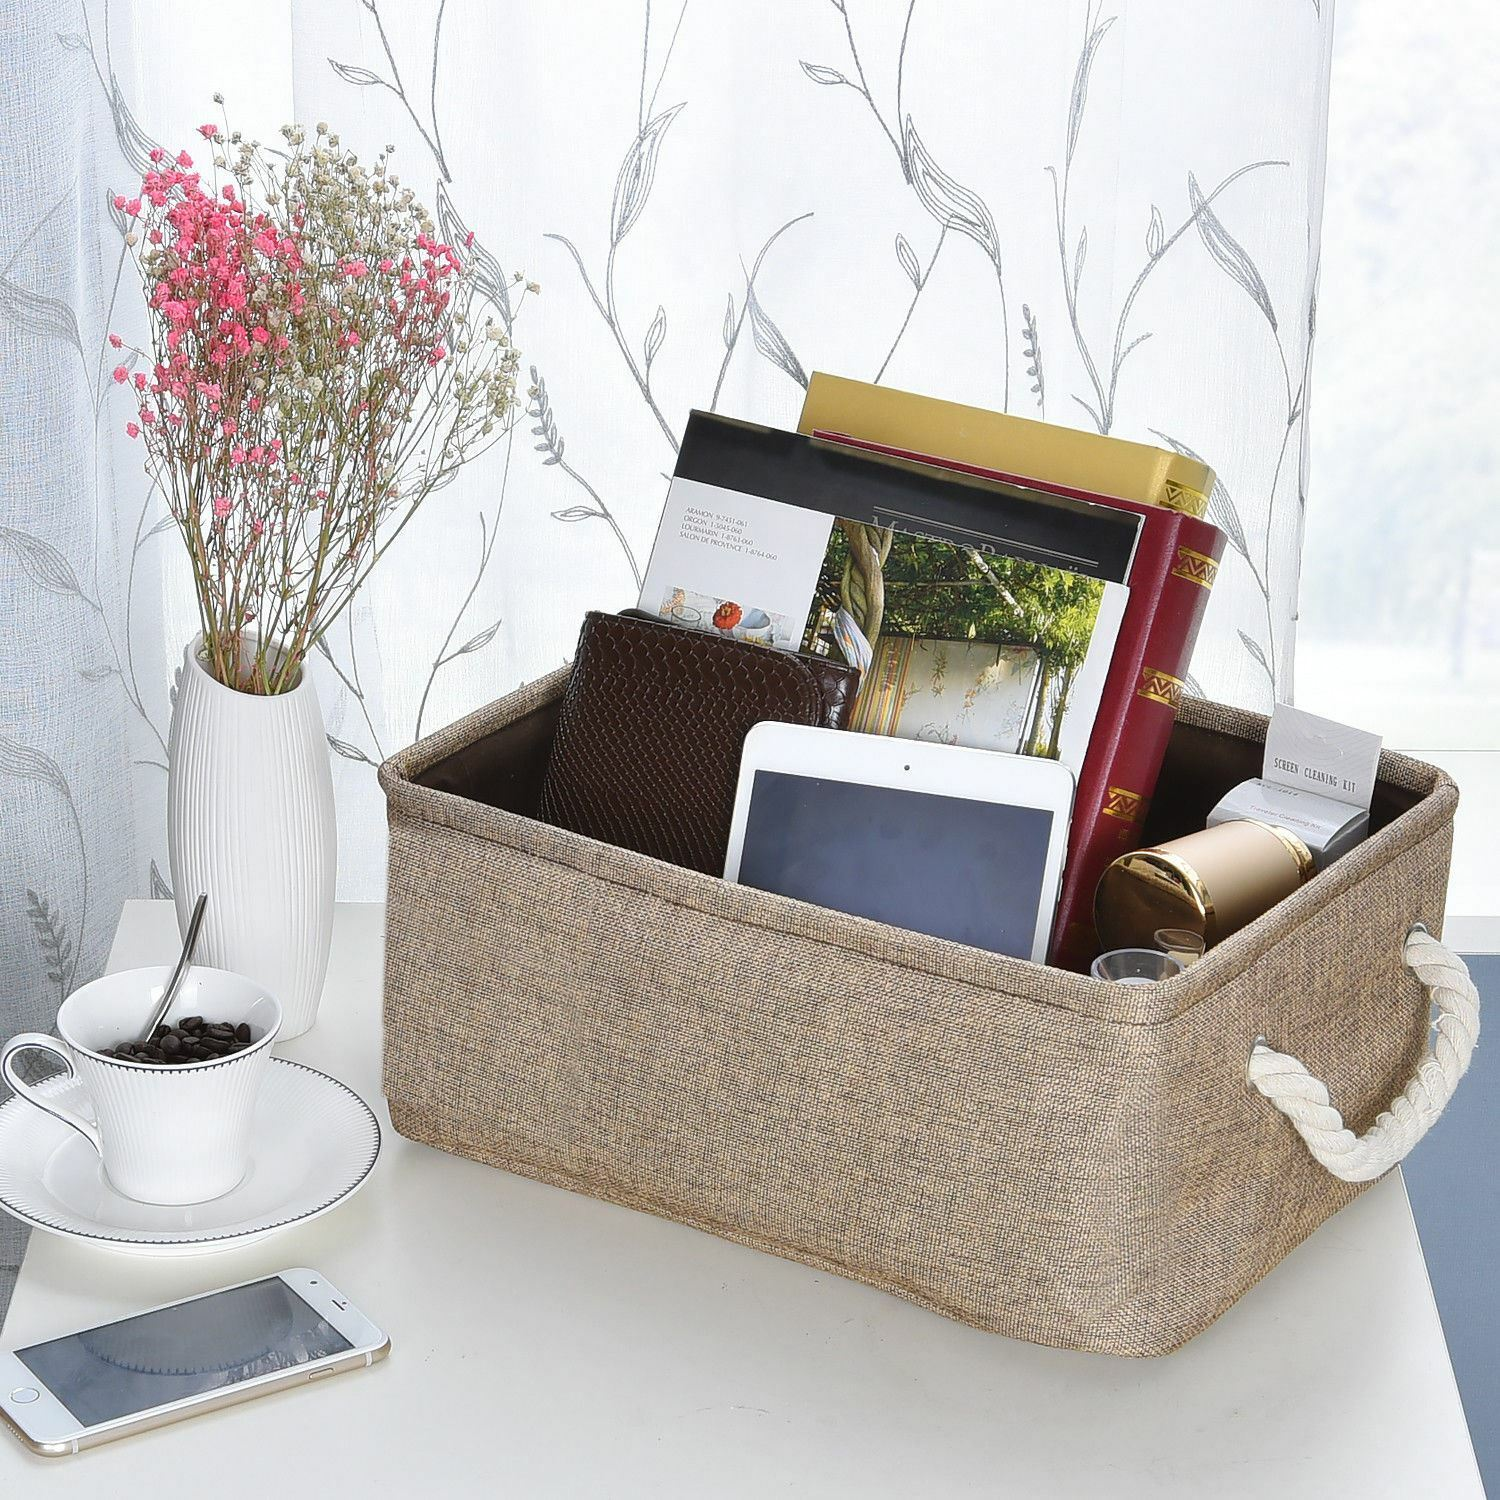 Fabric Storage Baskets and Bin Organizer Set for Home With Drawer Handles